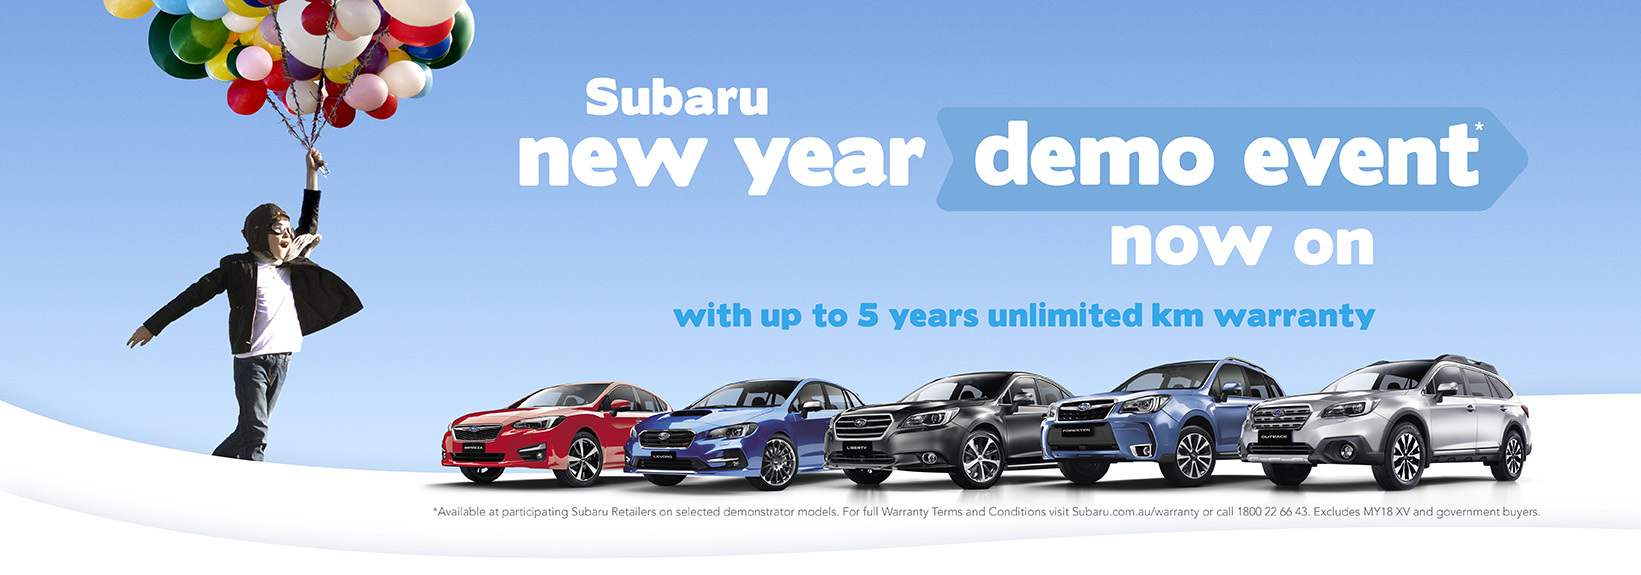 Subaru - National Offer -  Subaru New Year Event